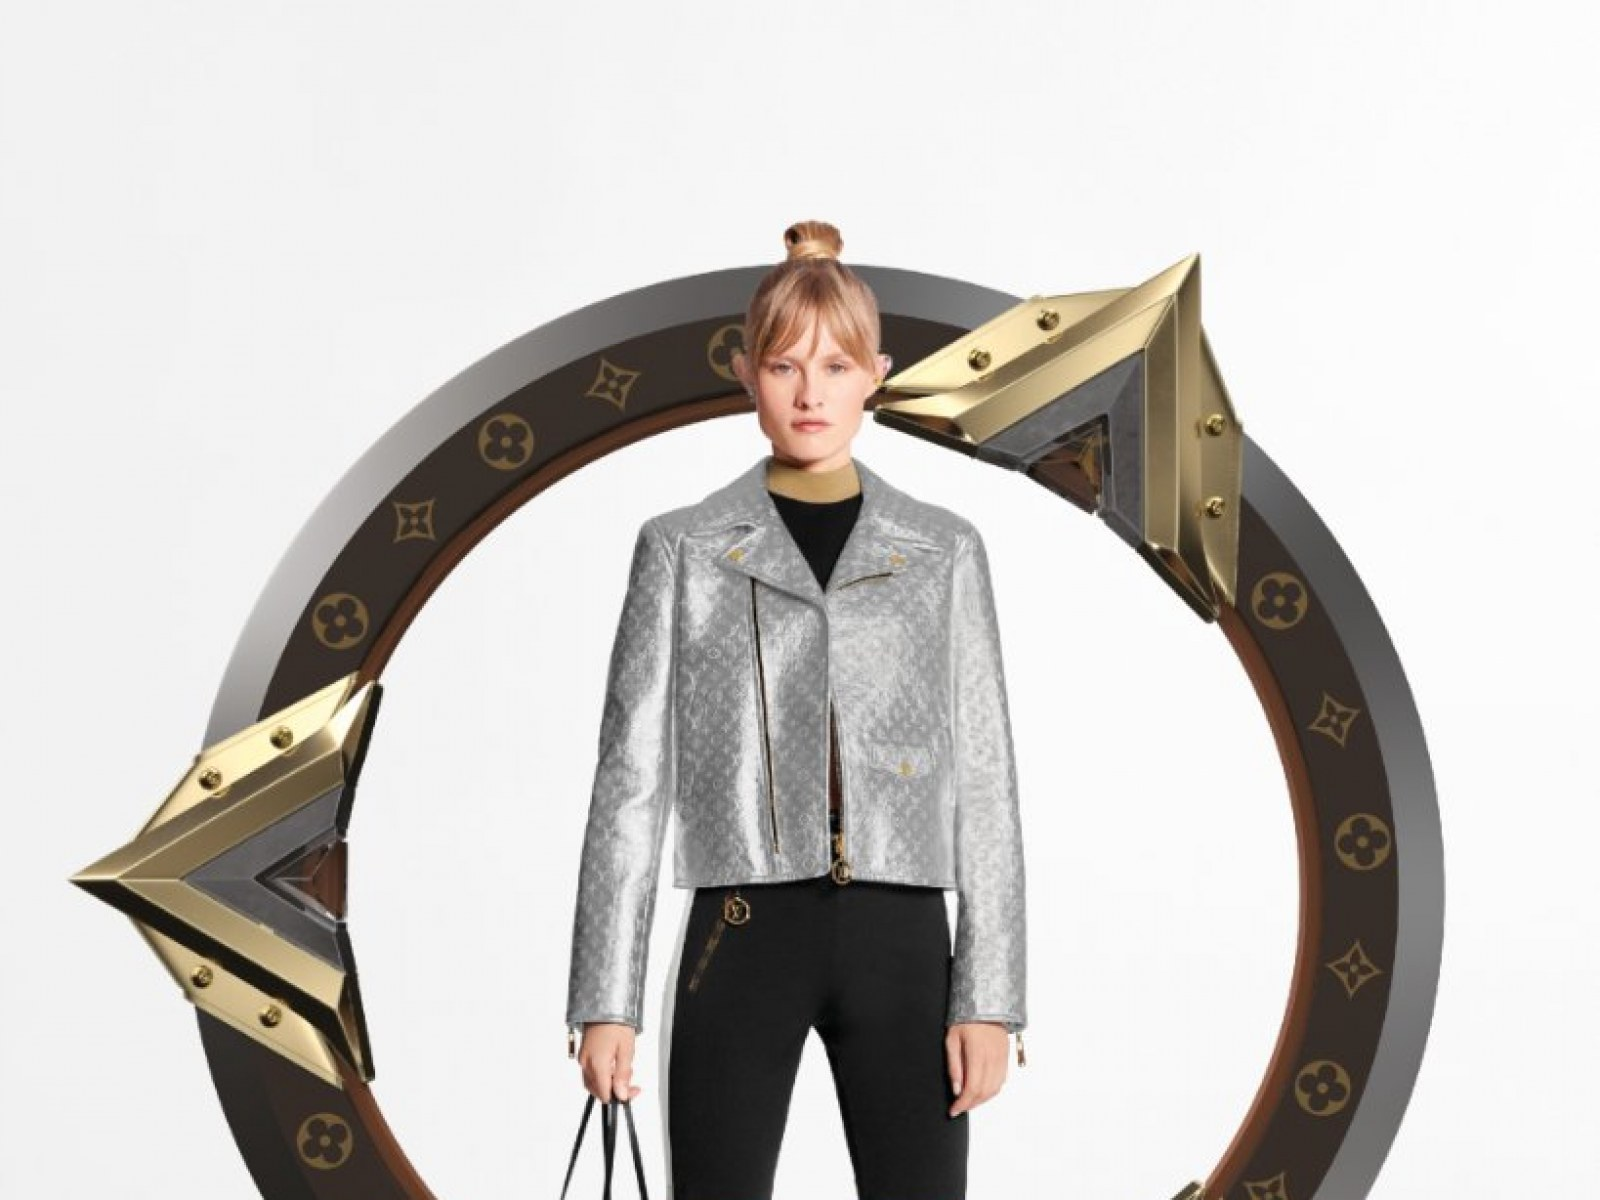 Louis Vuitton And League Of Legends Fashion Collection Where To